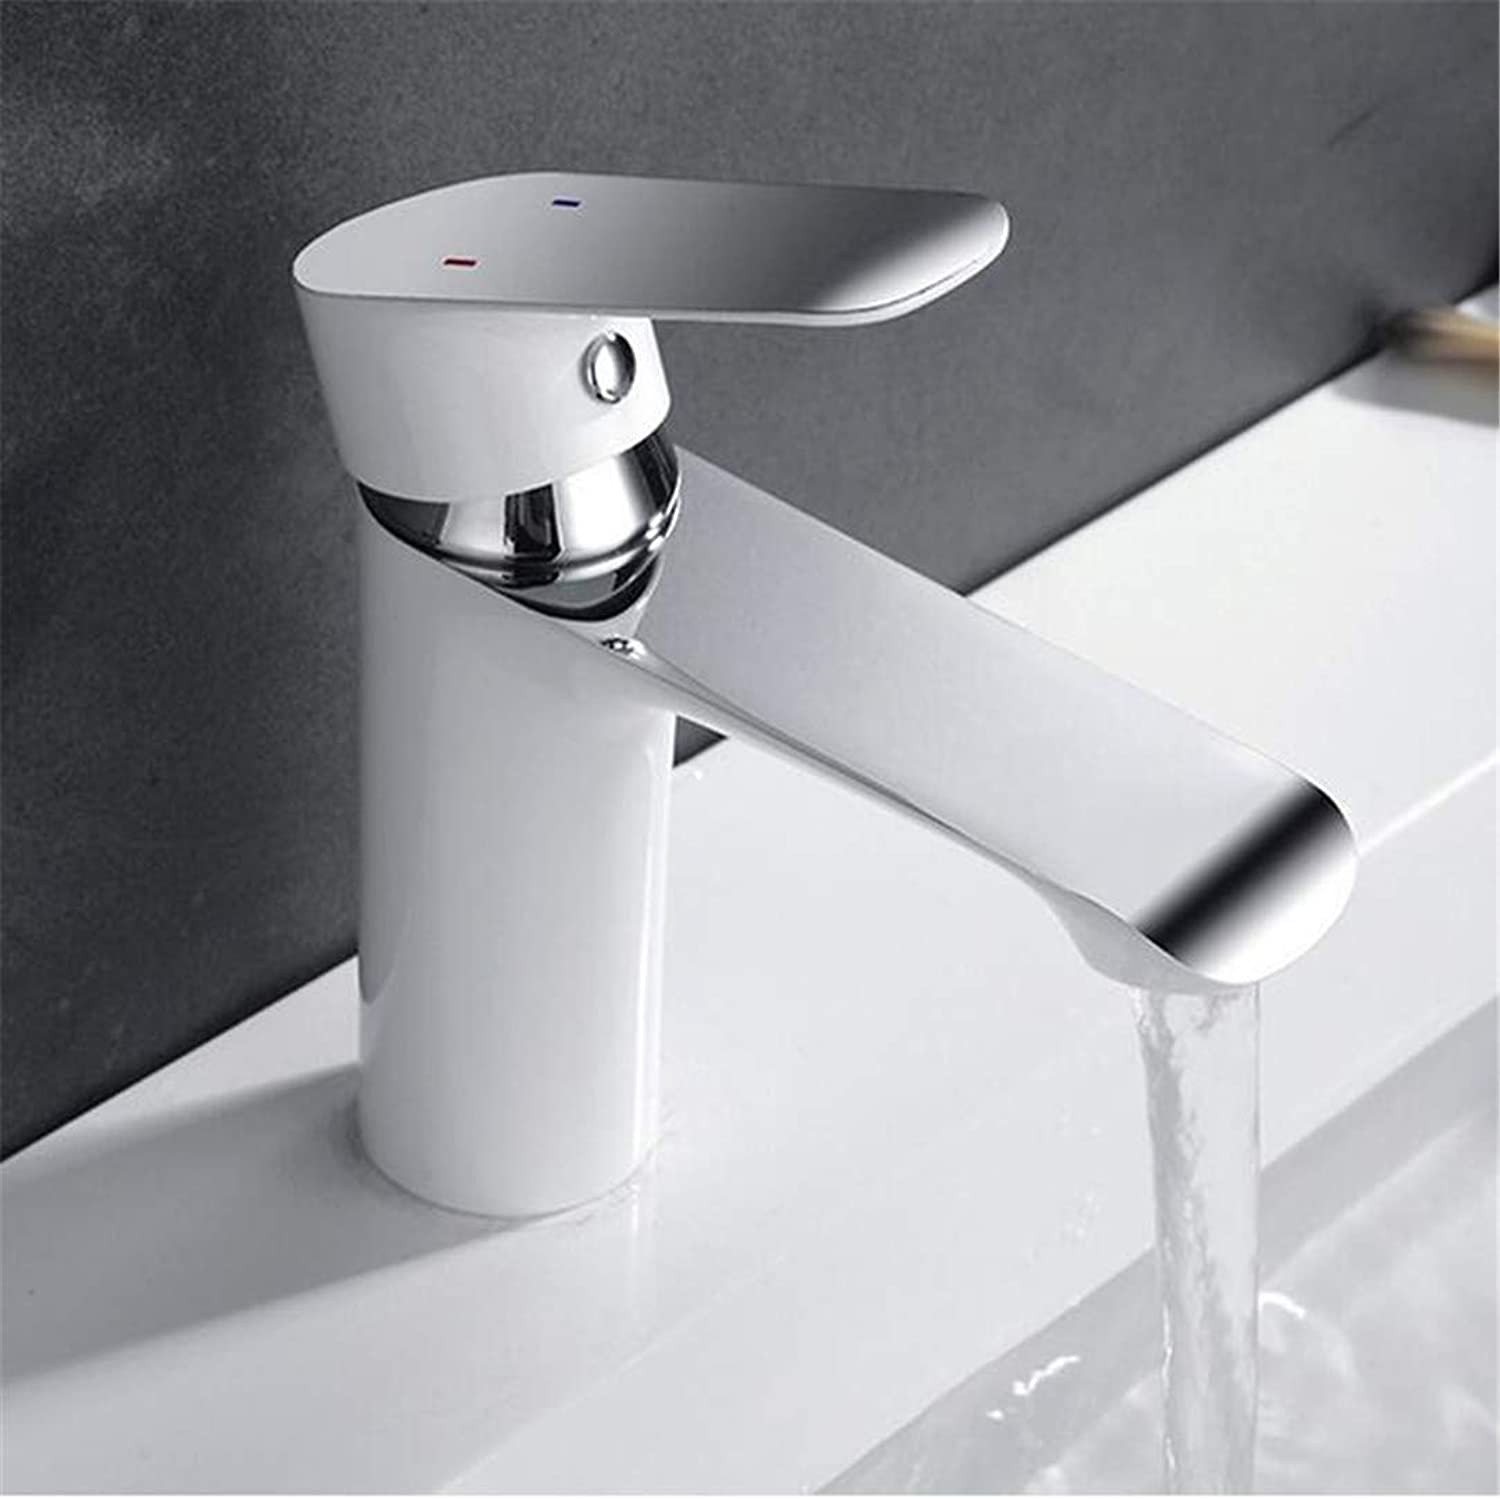 Faucet Washbasin Mixer Bathroom Faucet Deck Mounted Basin Mixer Faucet Chrome Sink Tap Vanity Hot Cold Water Faucet White Painting Tap Faucet